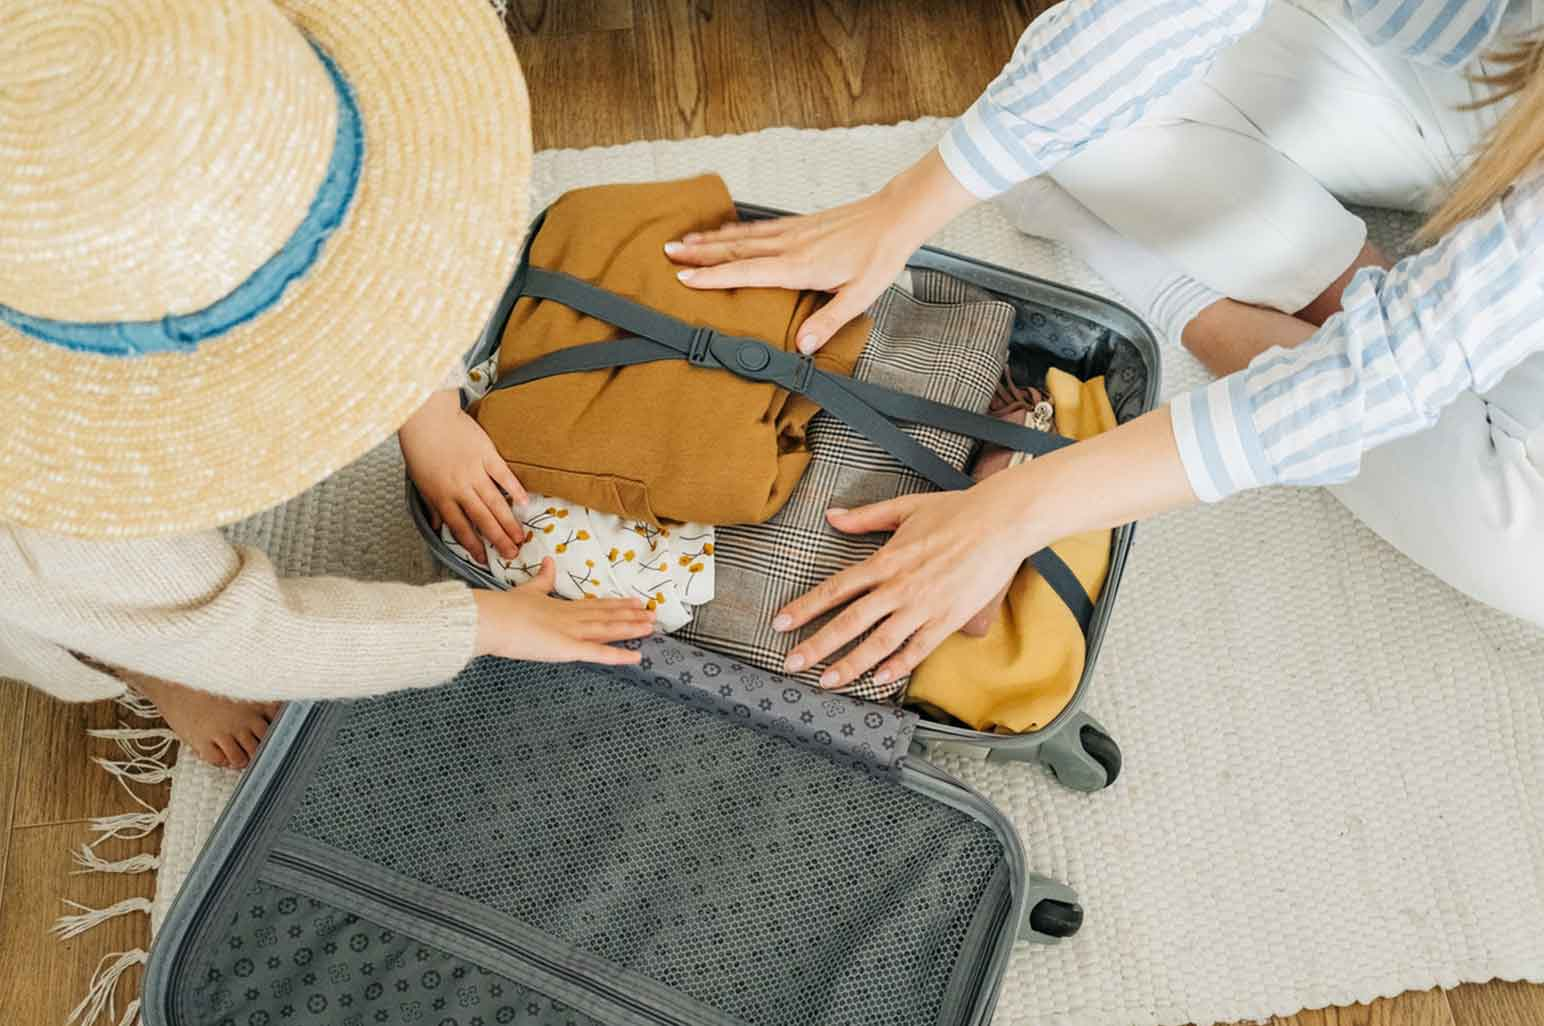 Handy Tips To Remember When Traveling With An Injury